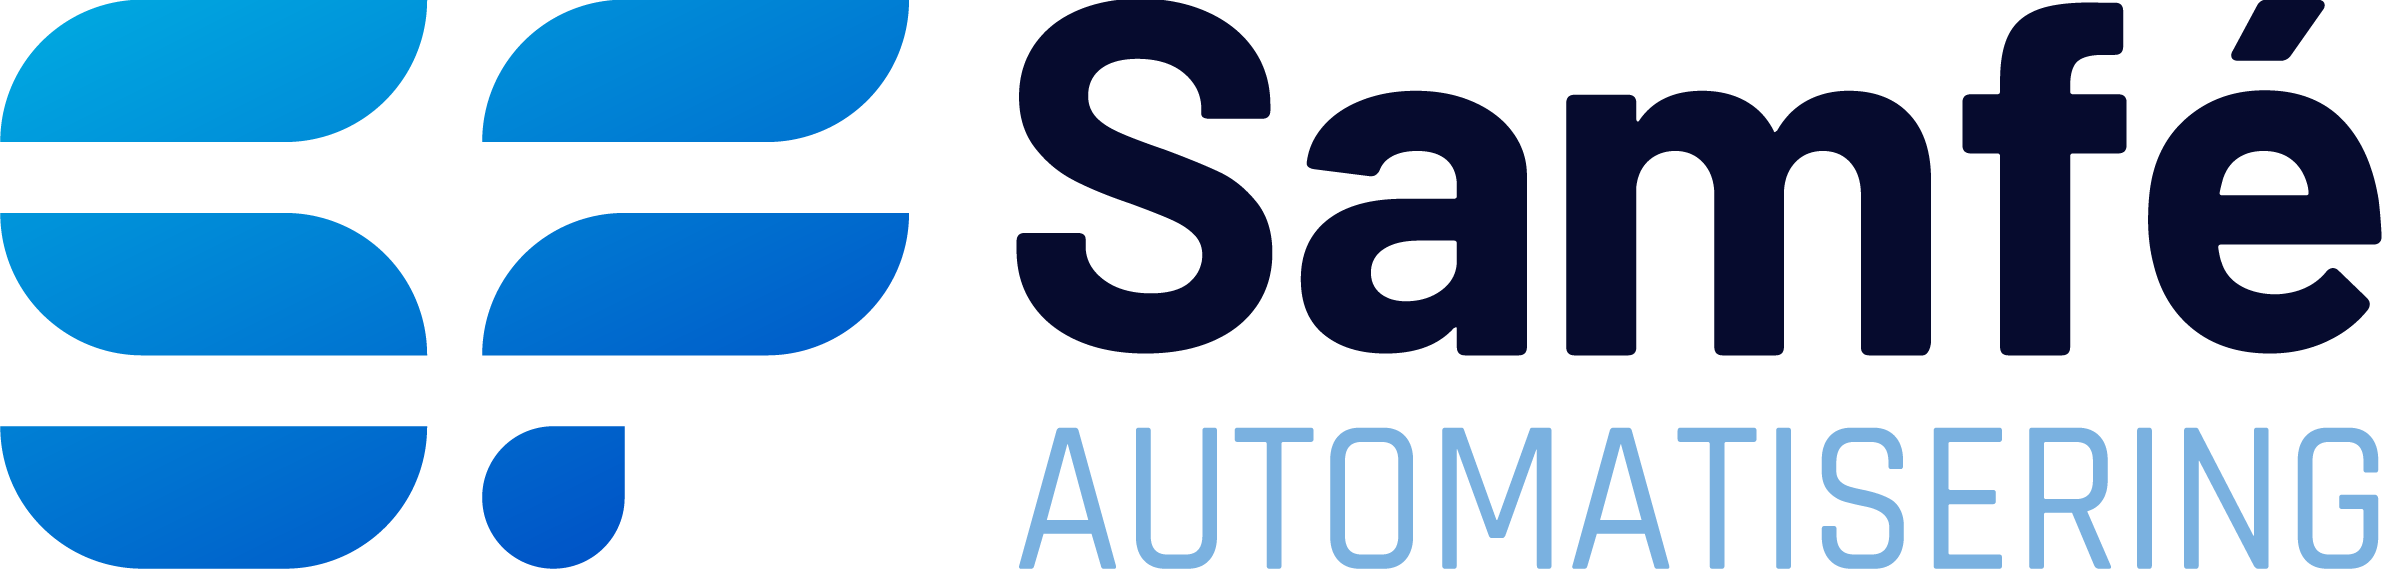 Samfe - software made easy